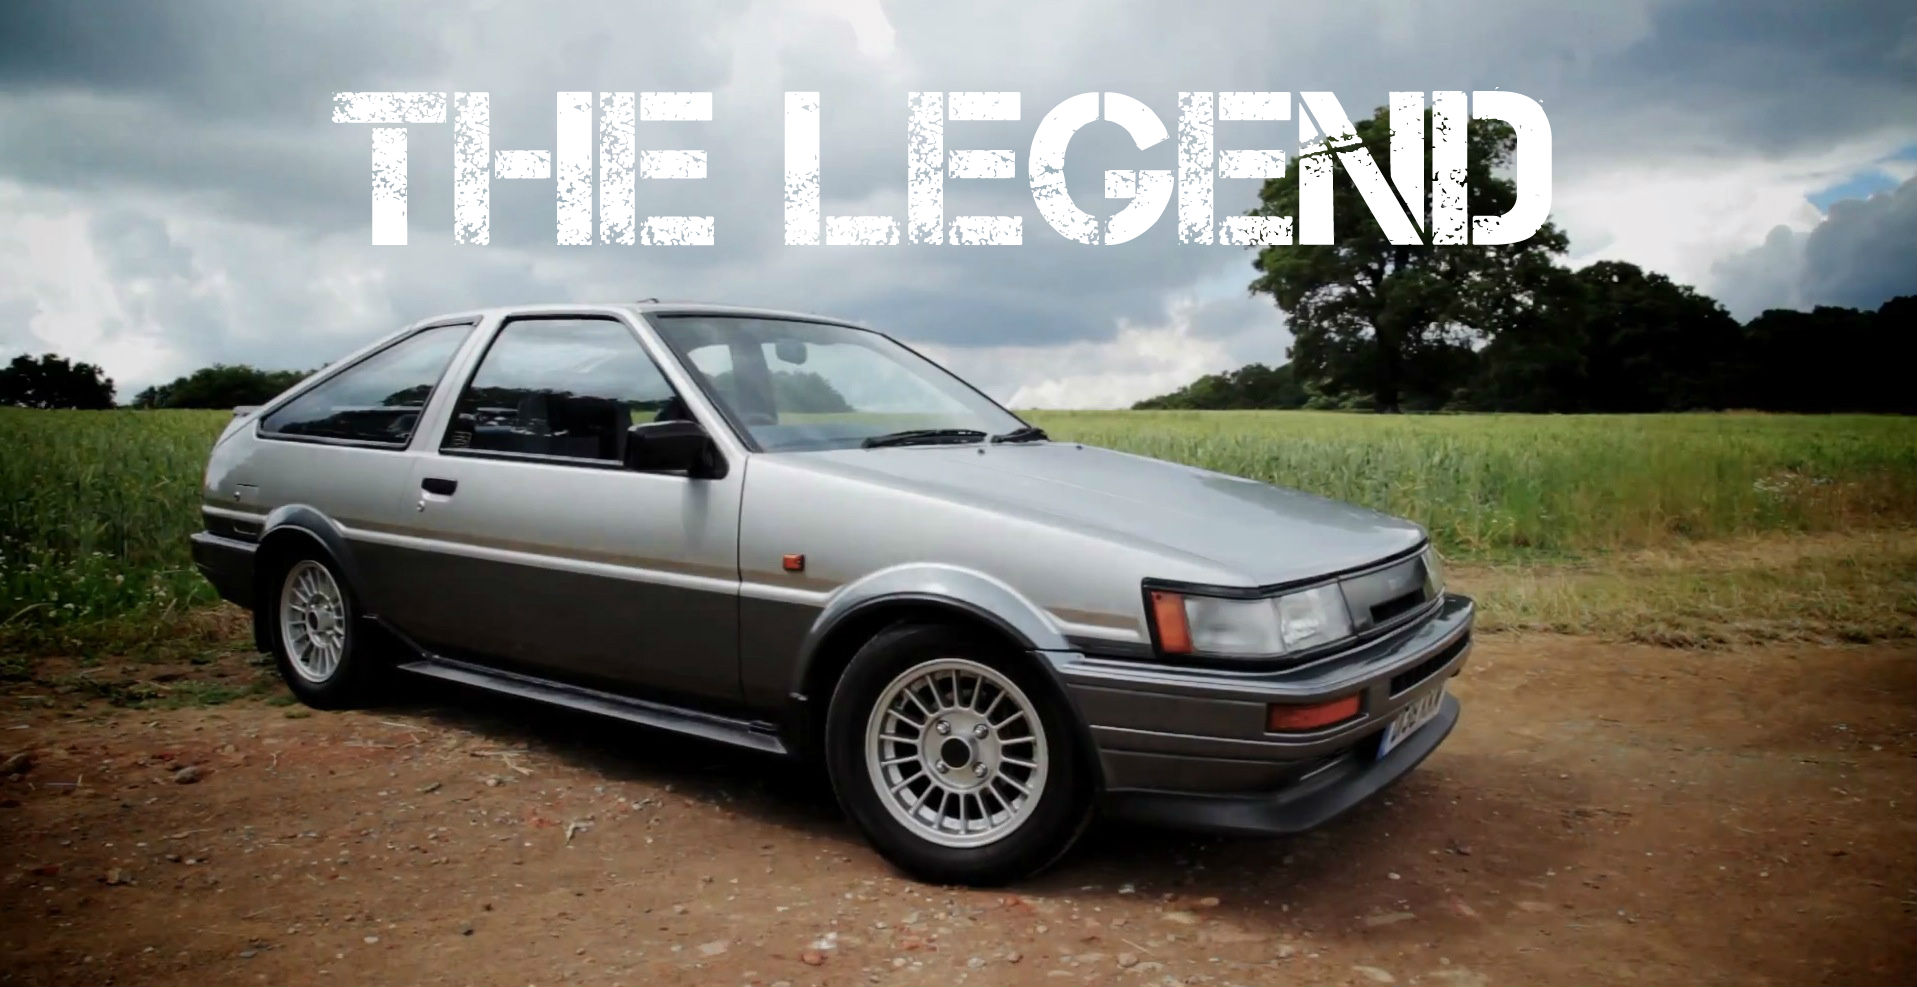 toyota ae86 review says twin cam engine is stunning. Black Bedroom Furniture Sets. Home Design Ideas